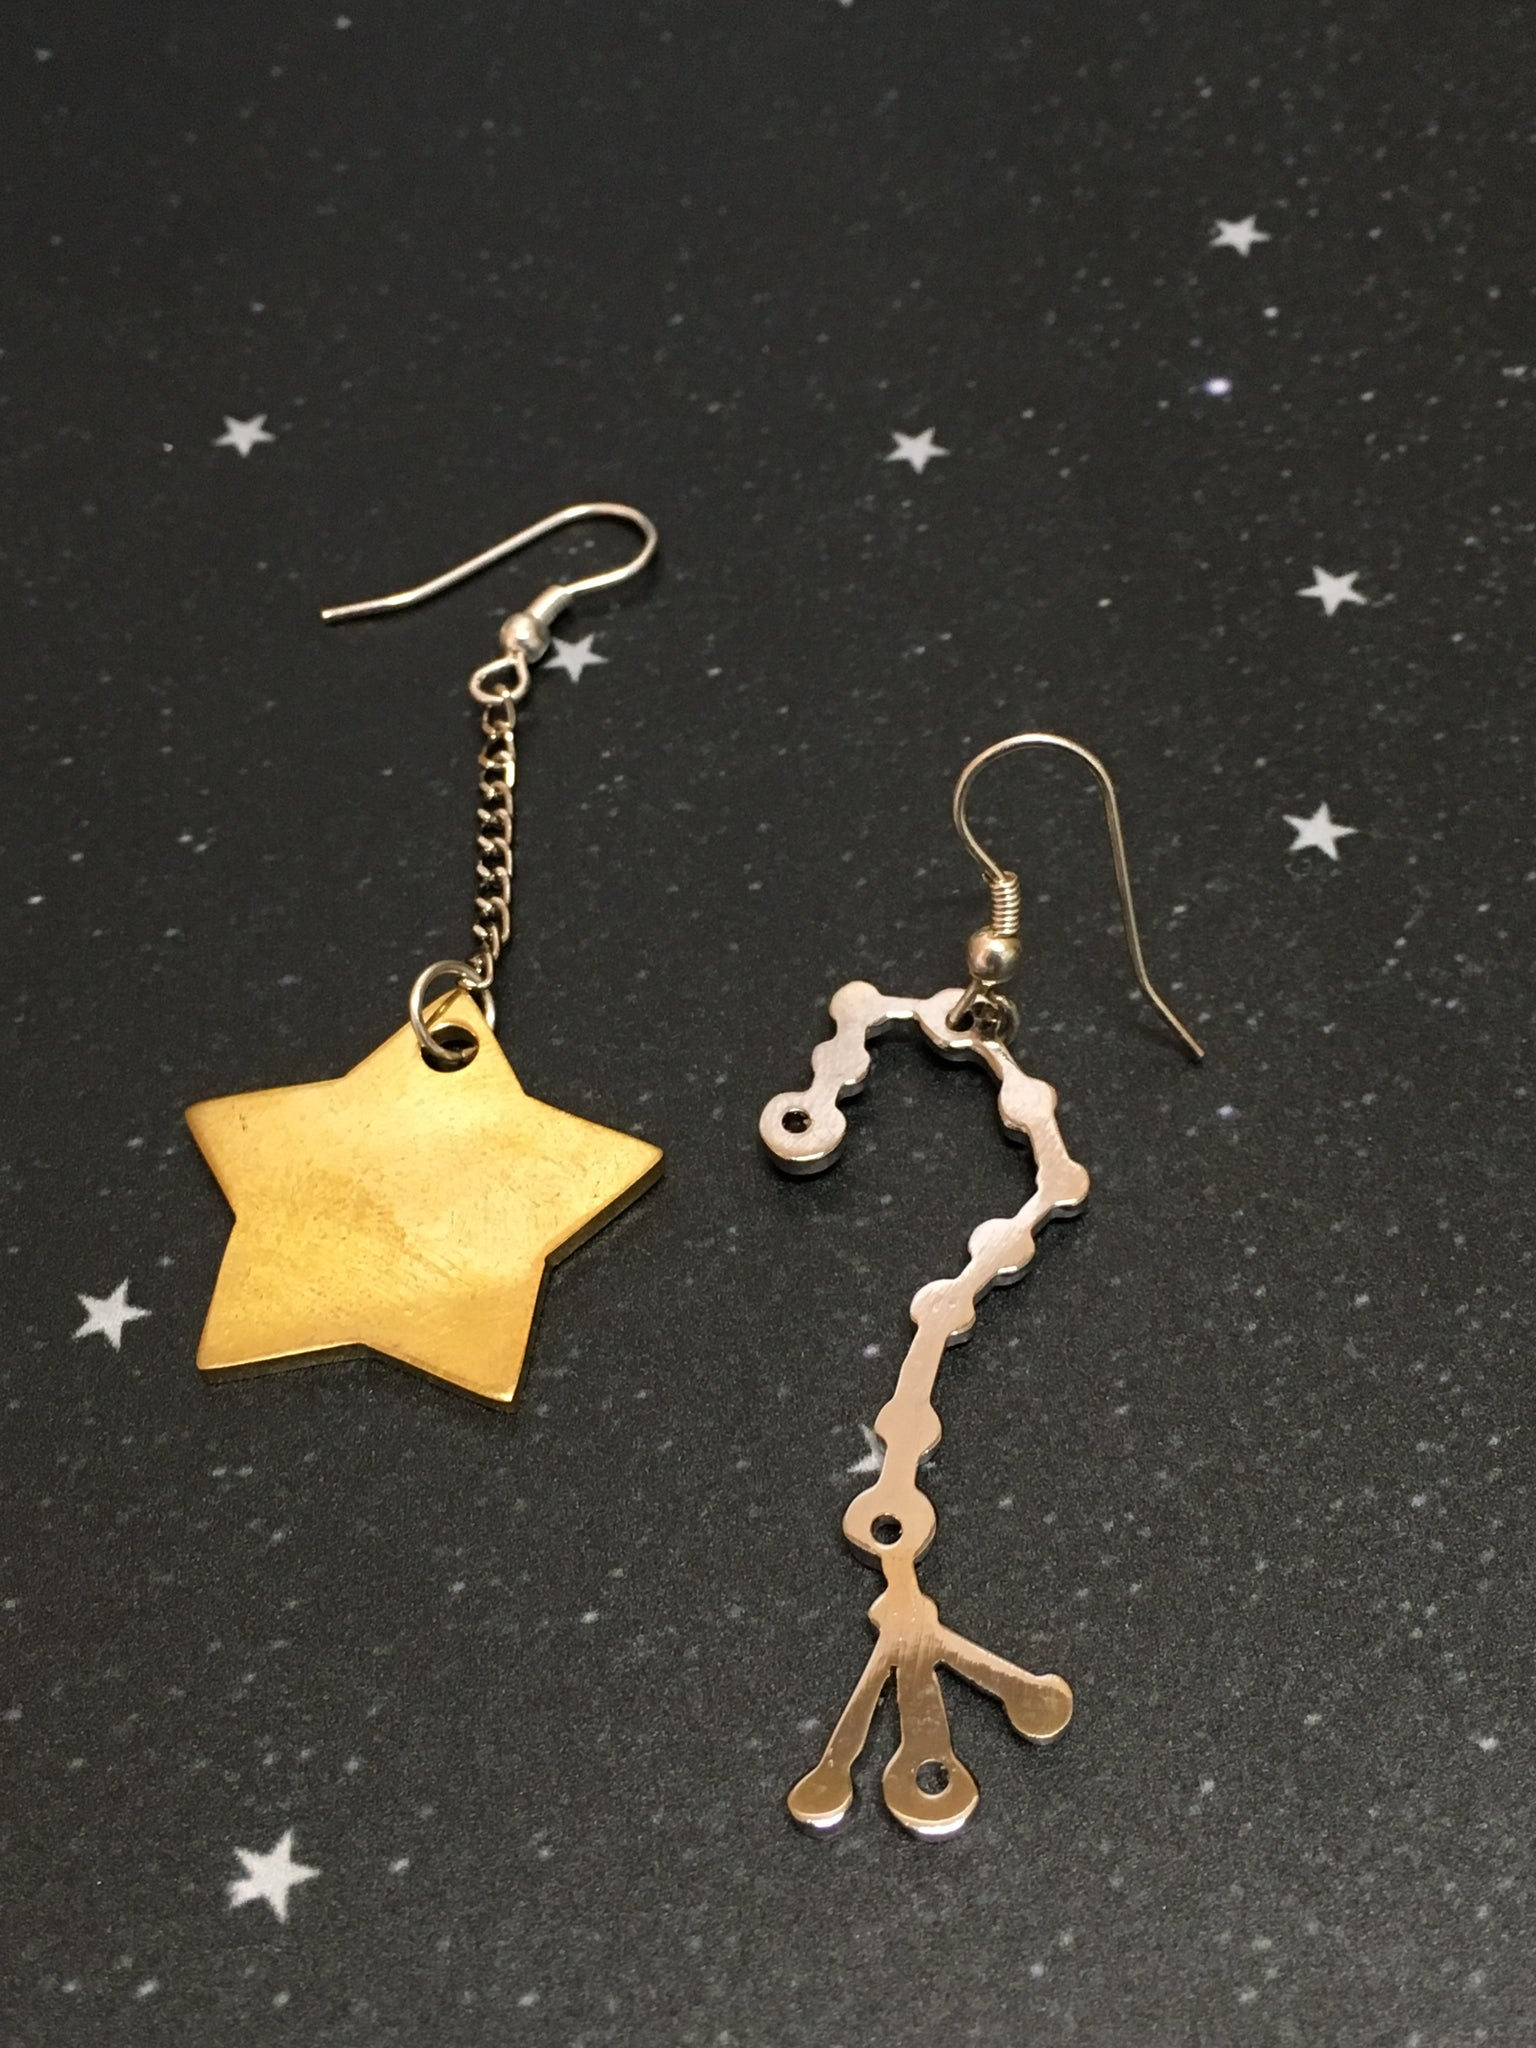 Gold Star 'SCORPIO' Earrings - Riddhika Jesrani